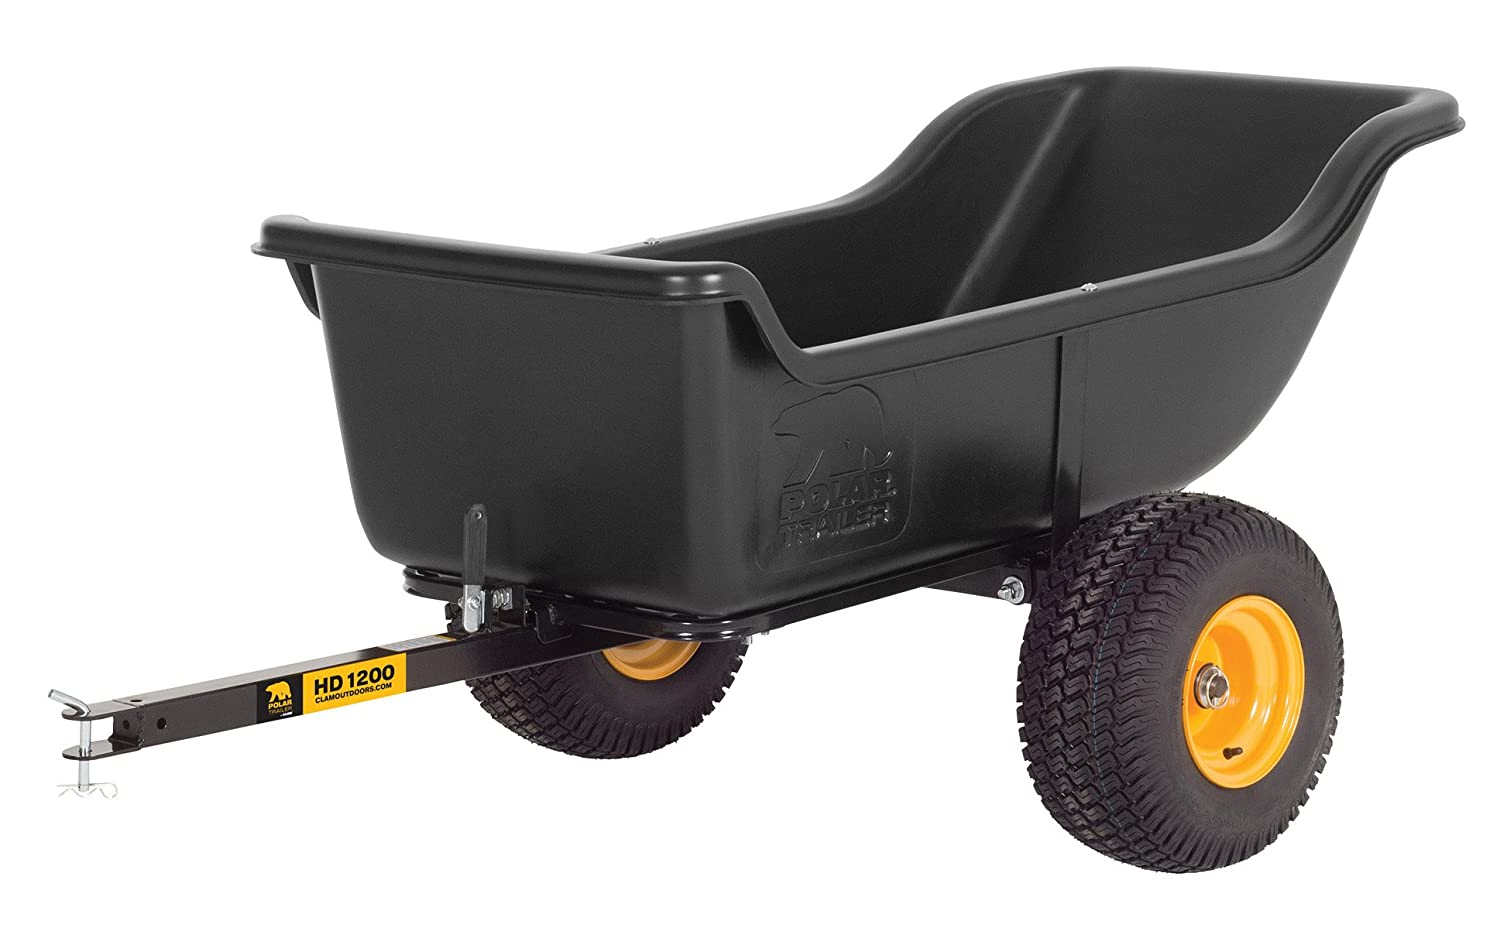 Polar Trailer 8232 HD 1200 Heavy Duty Utility and Hauling Cart, 84 x 45 x  31-Inch 1200 Lbs Load Capacity Rugged Wide-Track Tires Quick Release Tipper